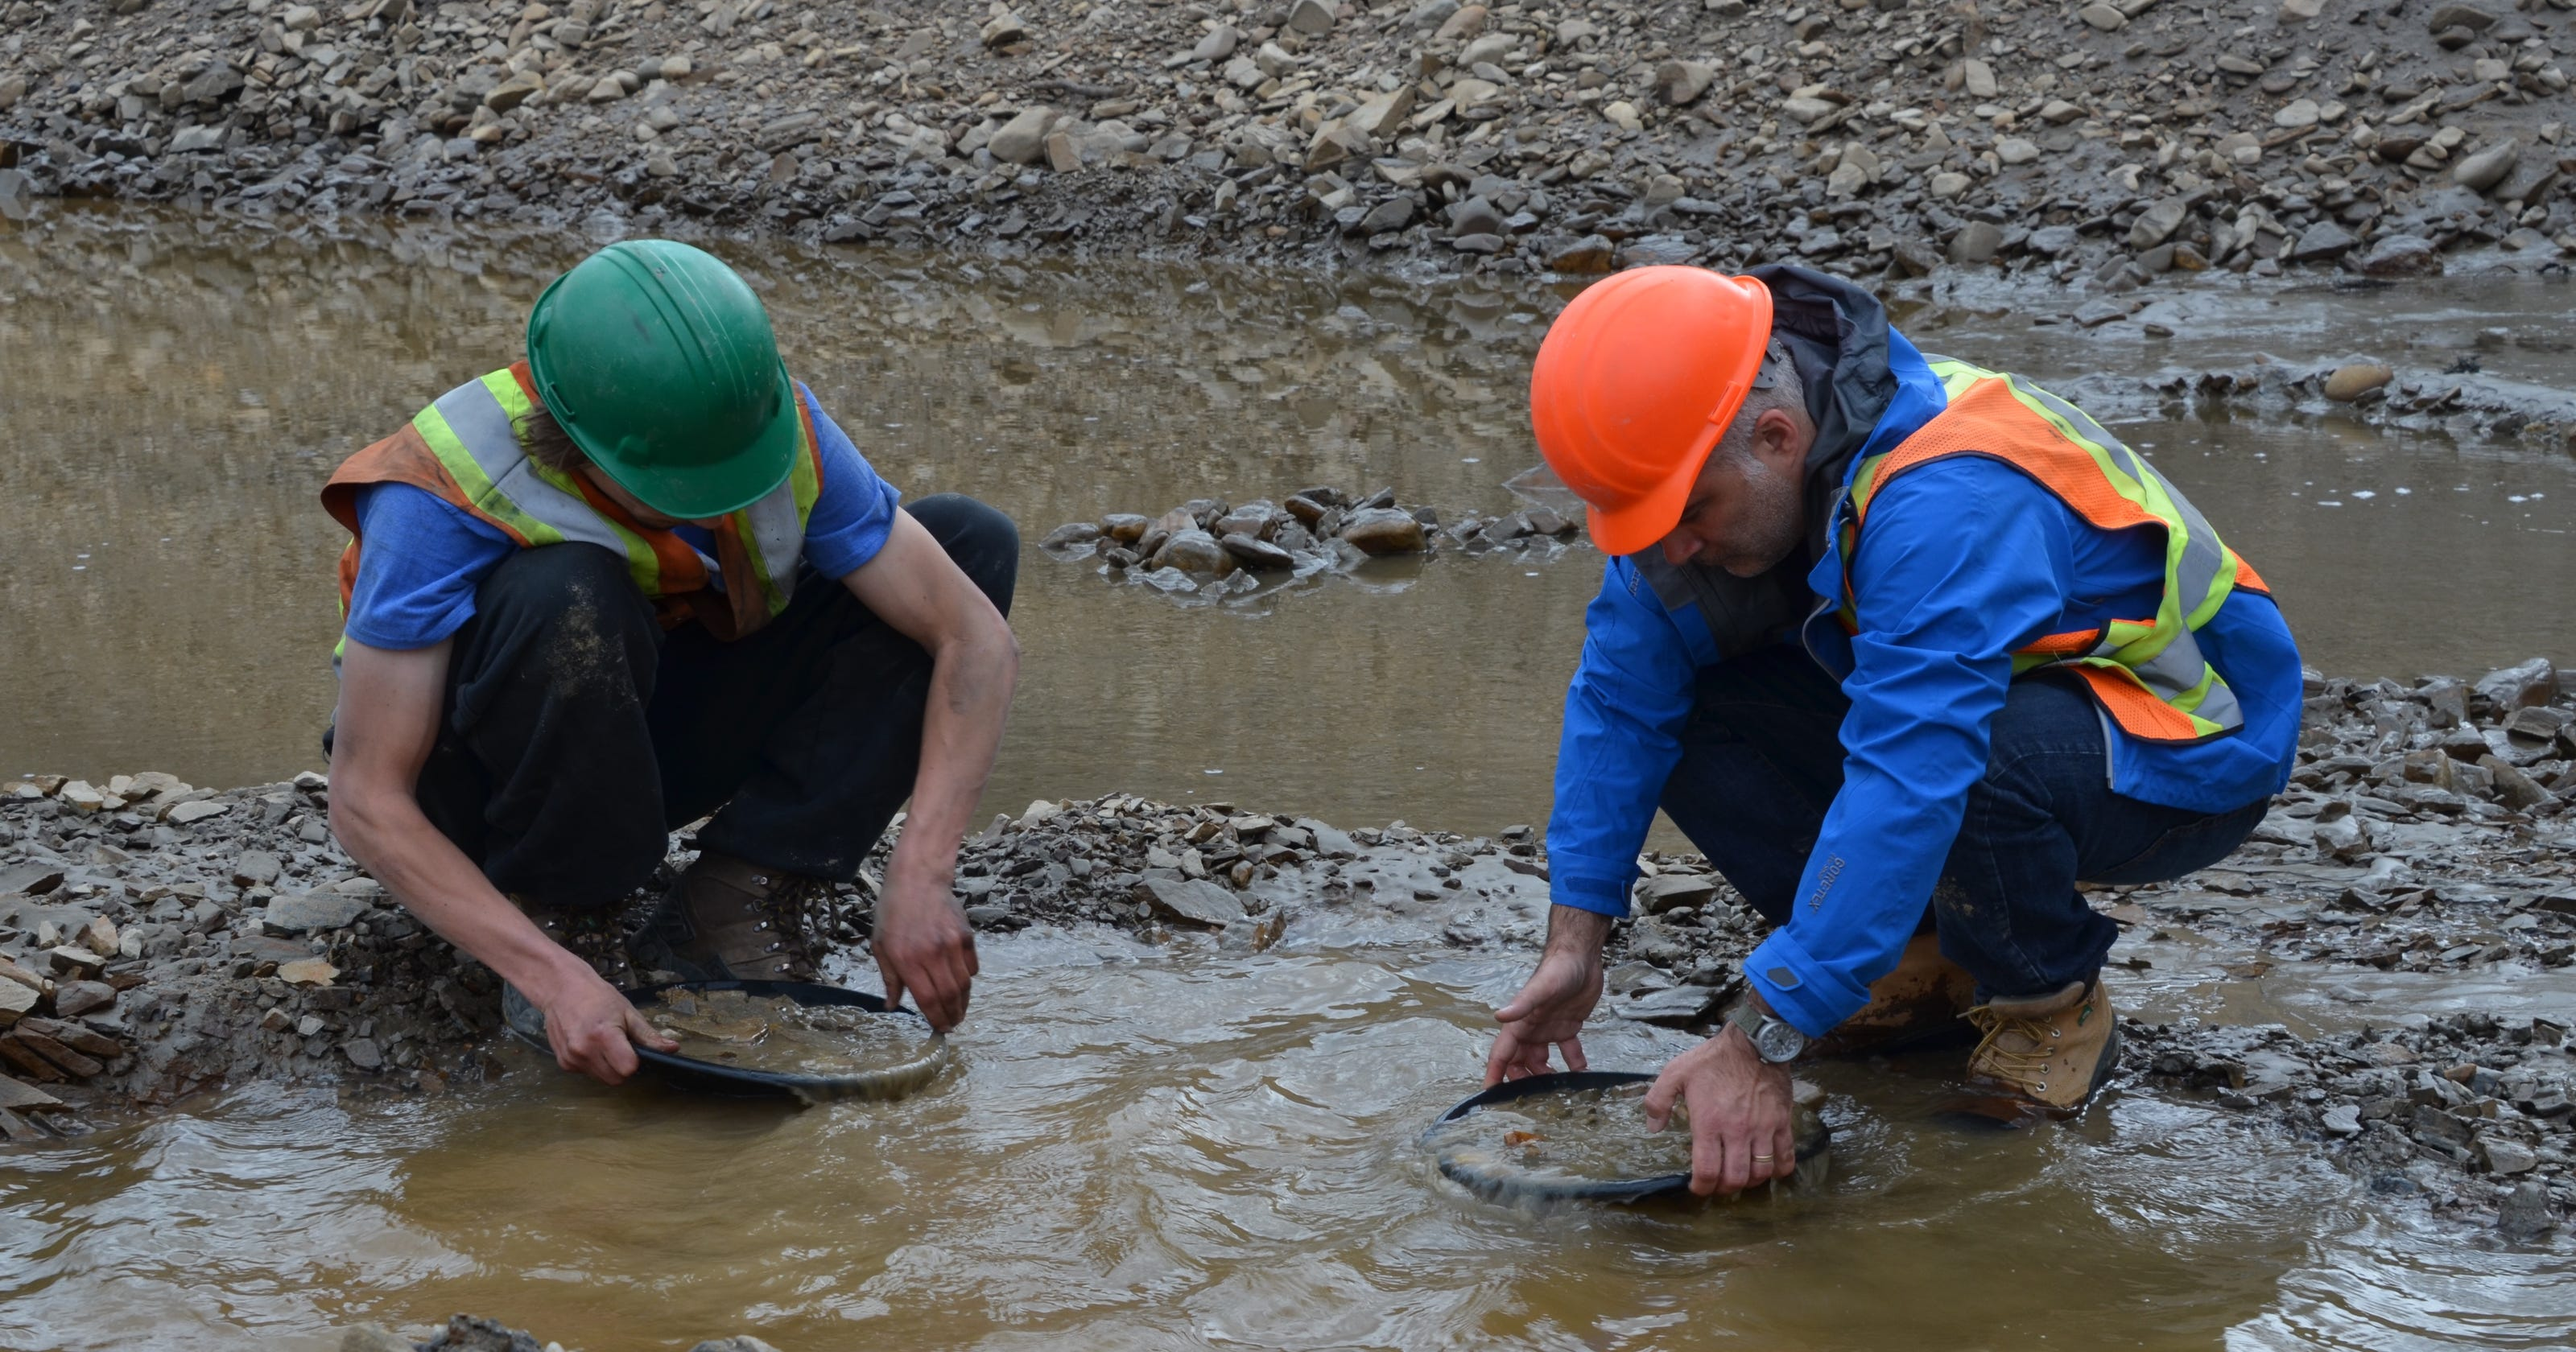 Dan Bova's 'Gold Rush' on Discovery Channel